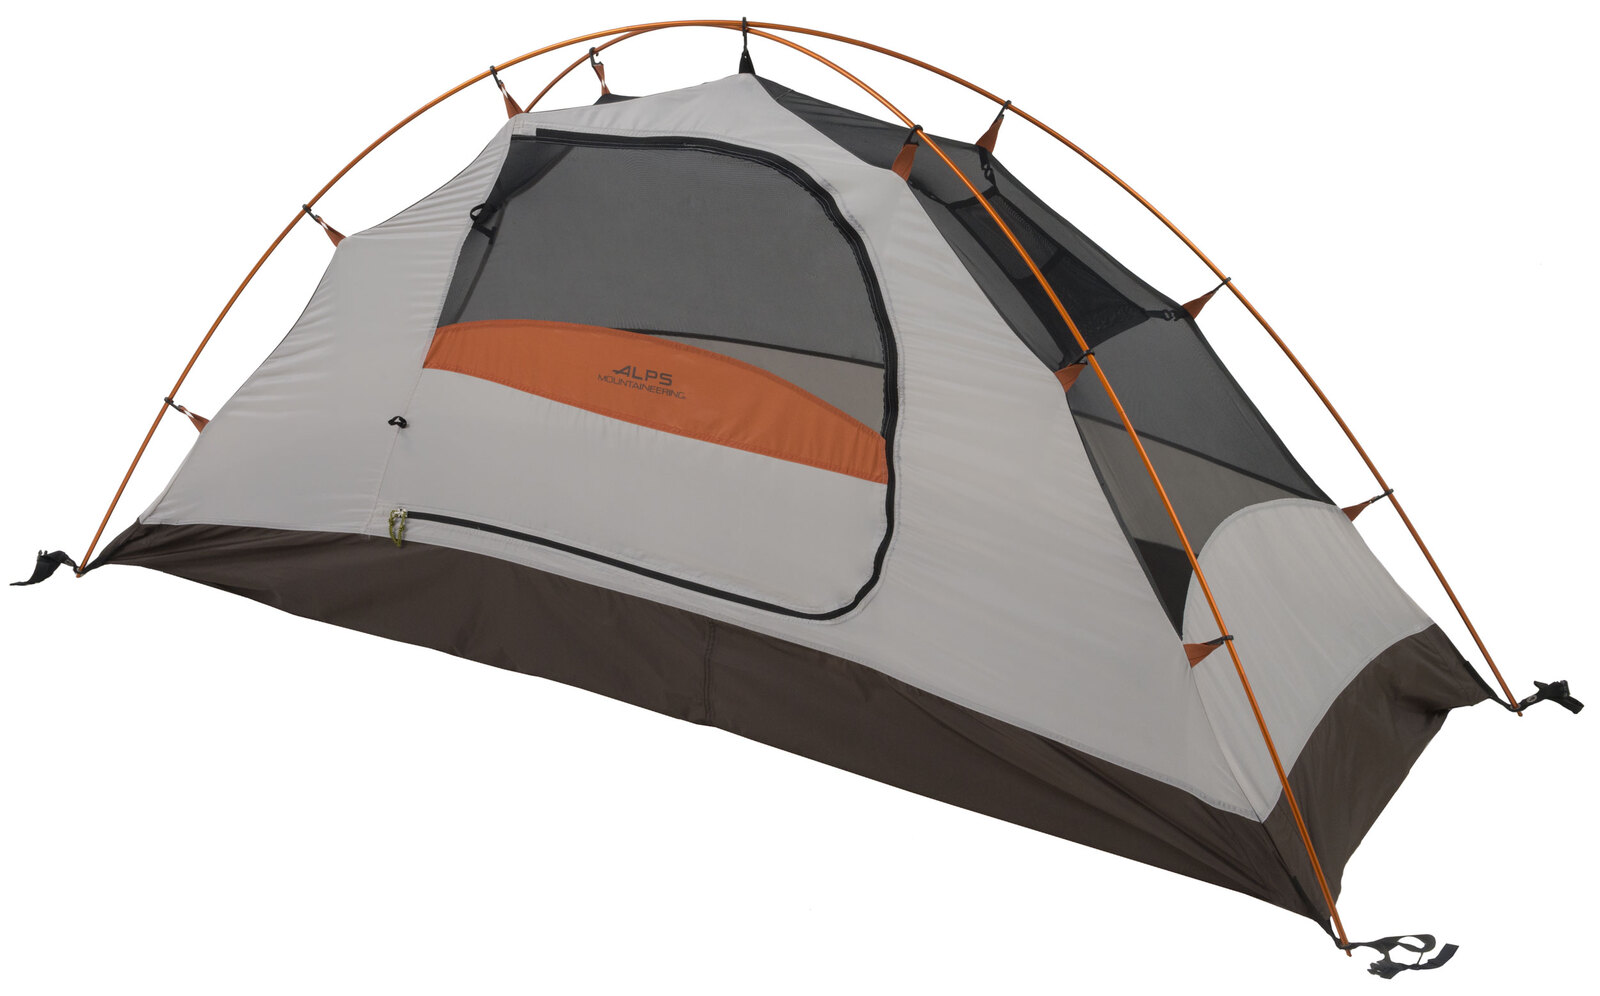 Alps Mountaineering Lynx 1 Person Hiking Tent. Show More  sc 1 st  Wild Earth & Alps Mountaineering Lynx 1 Person Hiking Tent